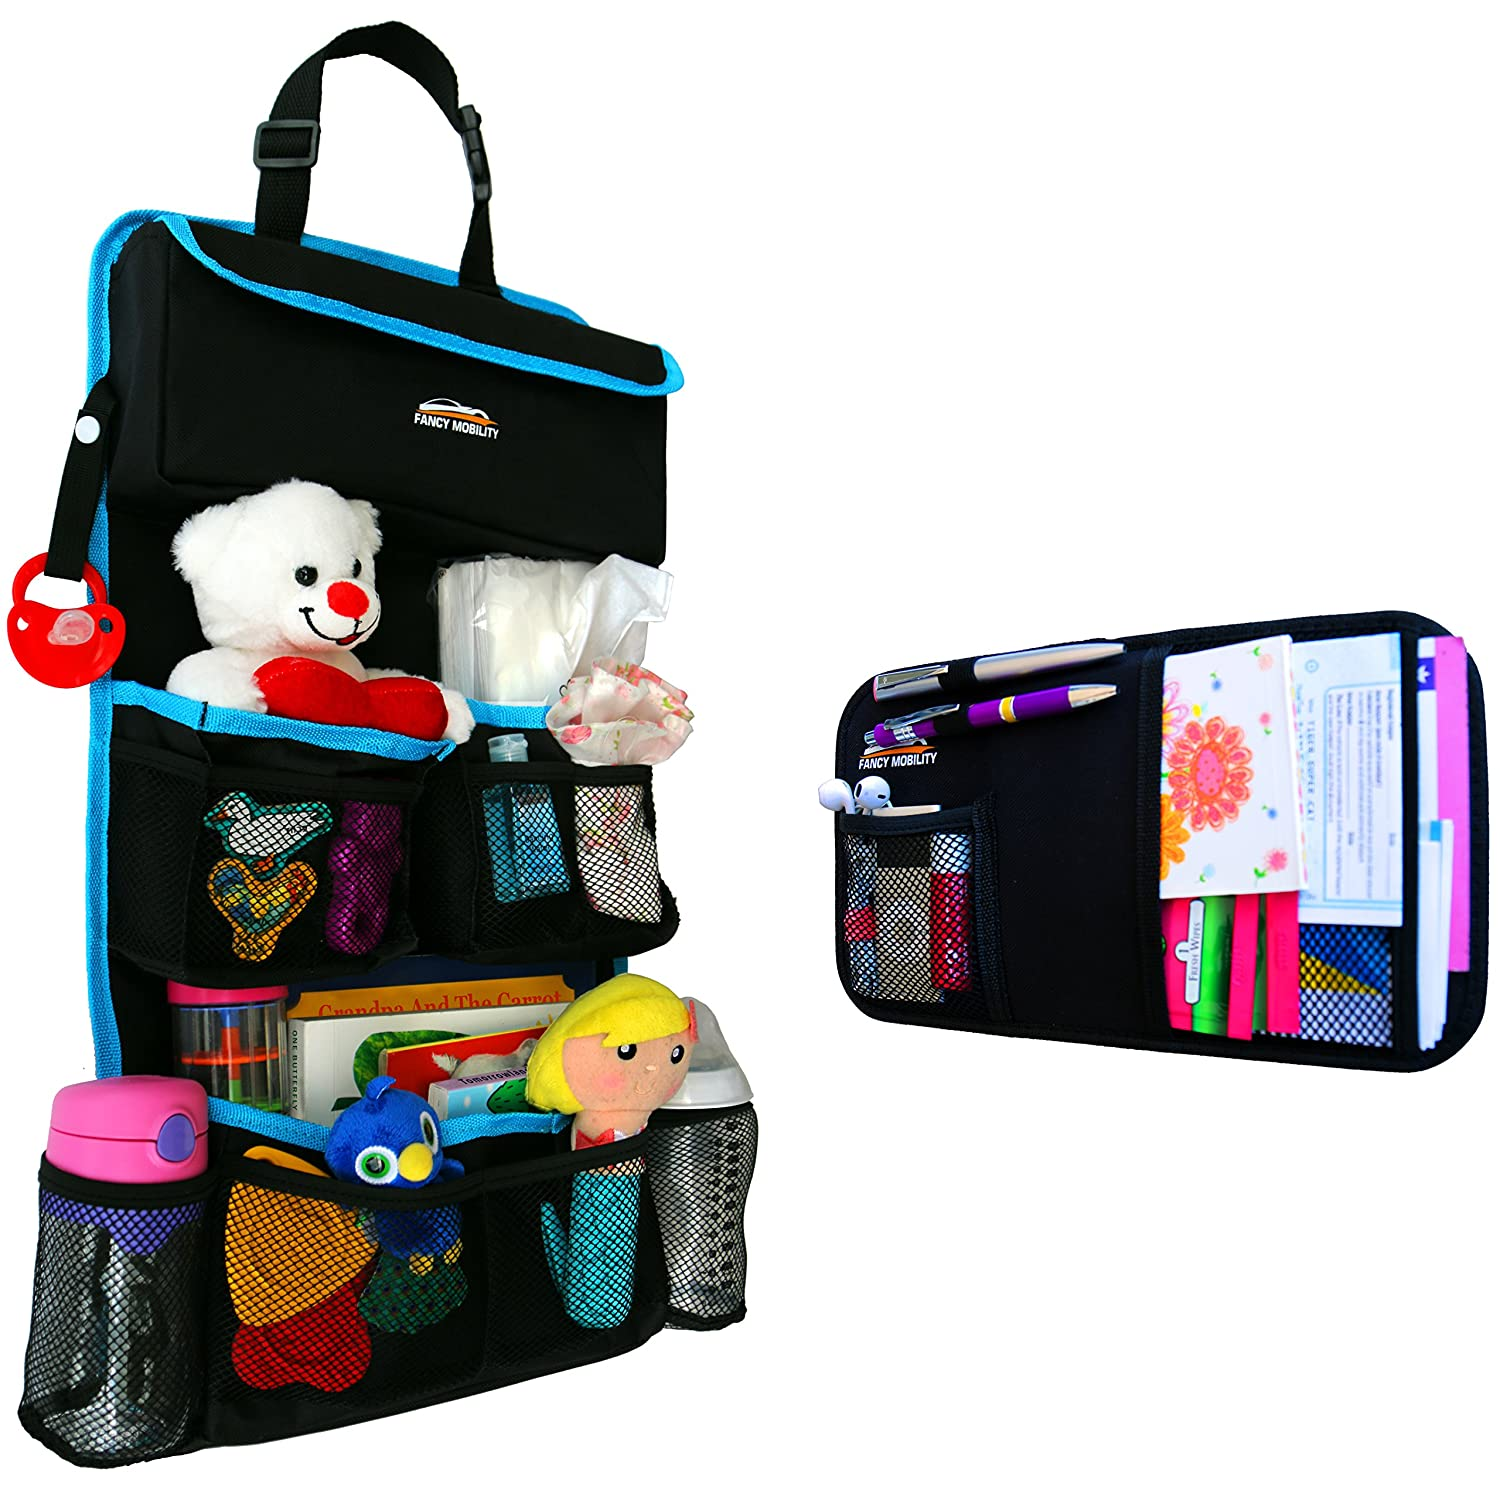 Fancy Mobility Car Backseat Organizer - Baby Accessories, Kids Small Toys & Travel Essentials Holder - Great Storage Bag for Road Trips - Perfect Baby Shower Gift - Includes Visor Organizer - 2Pack